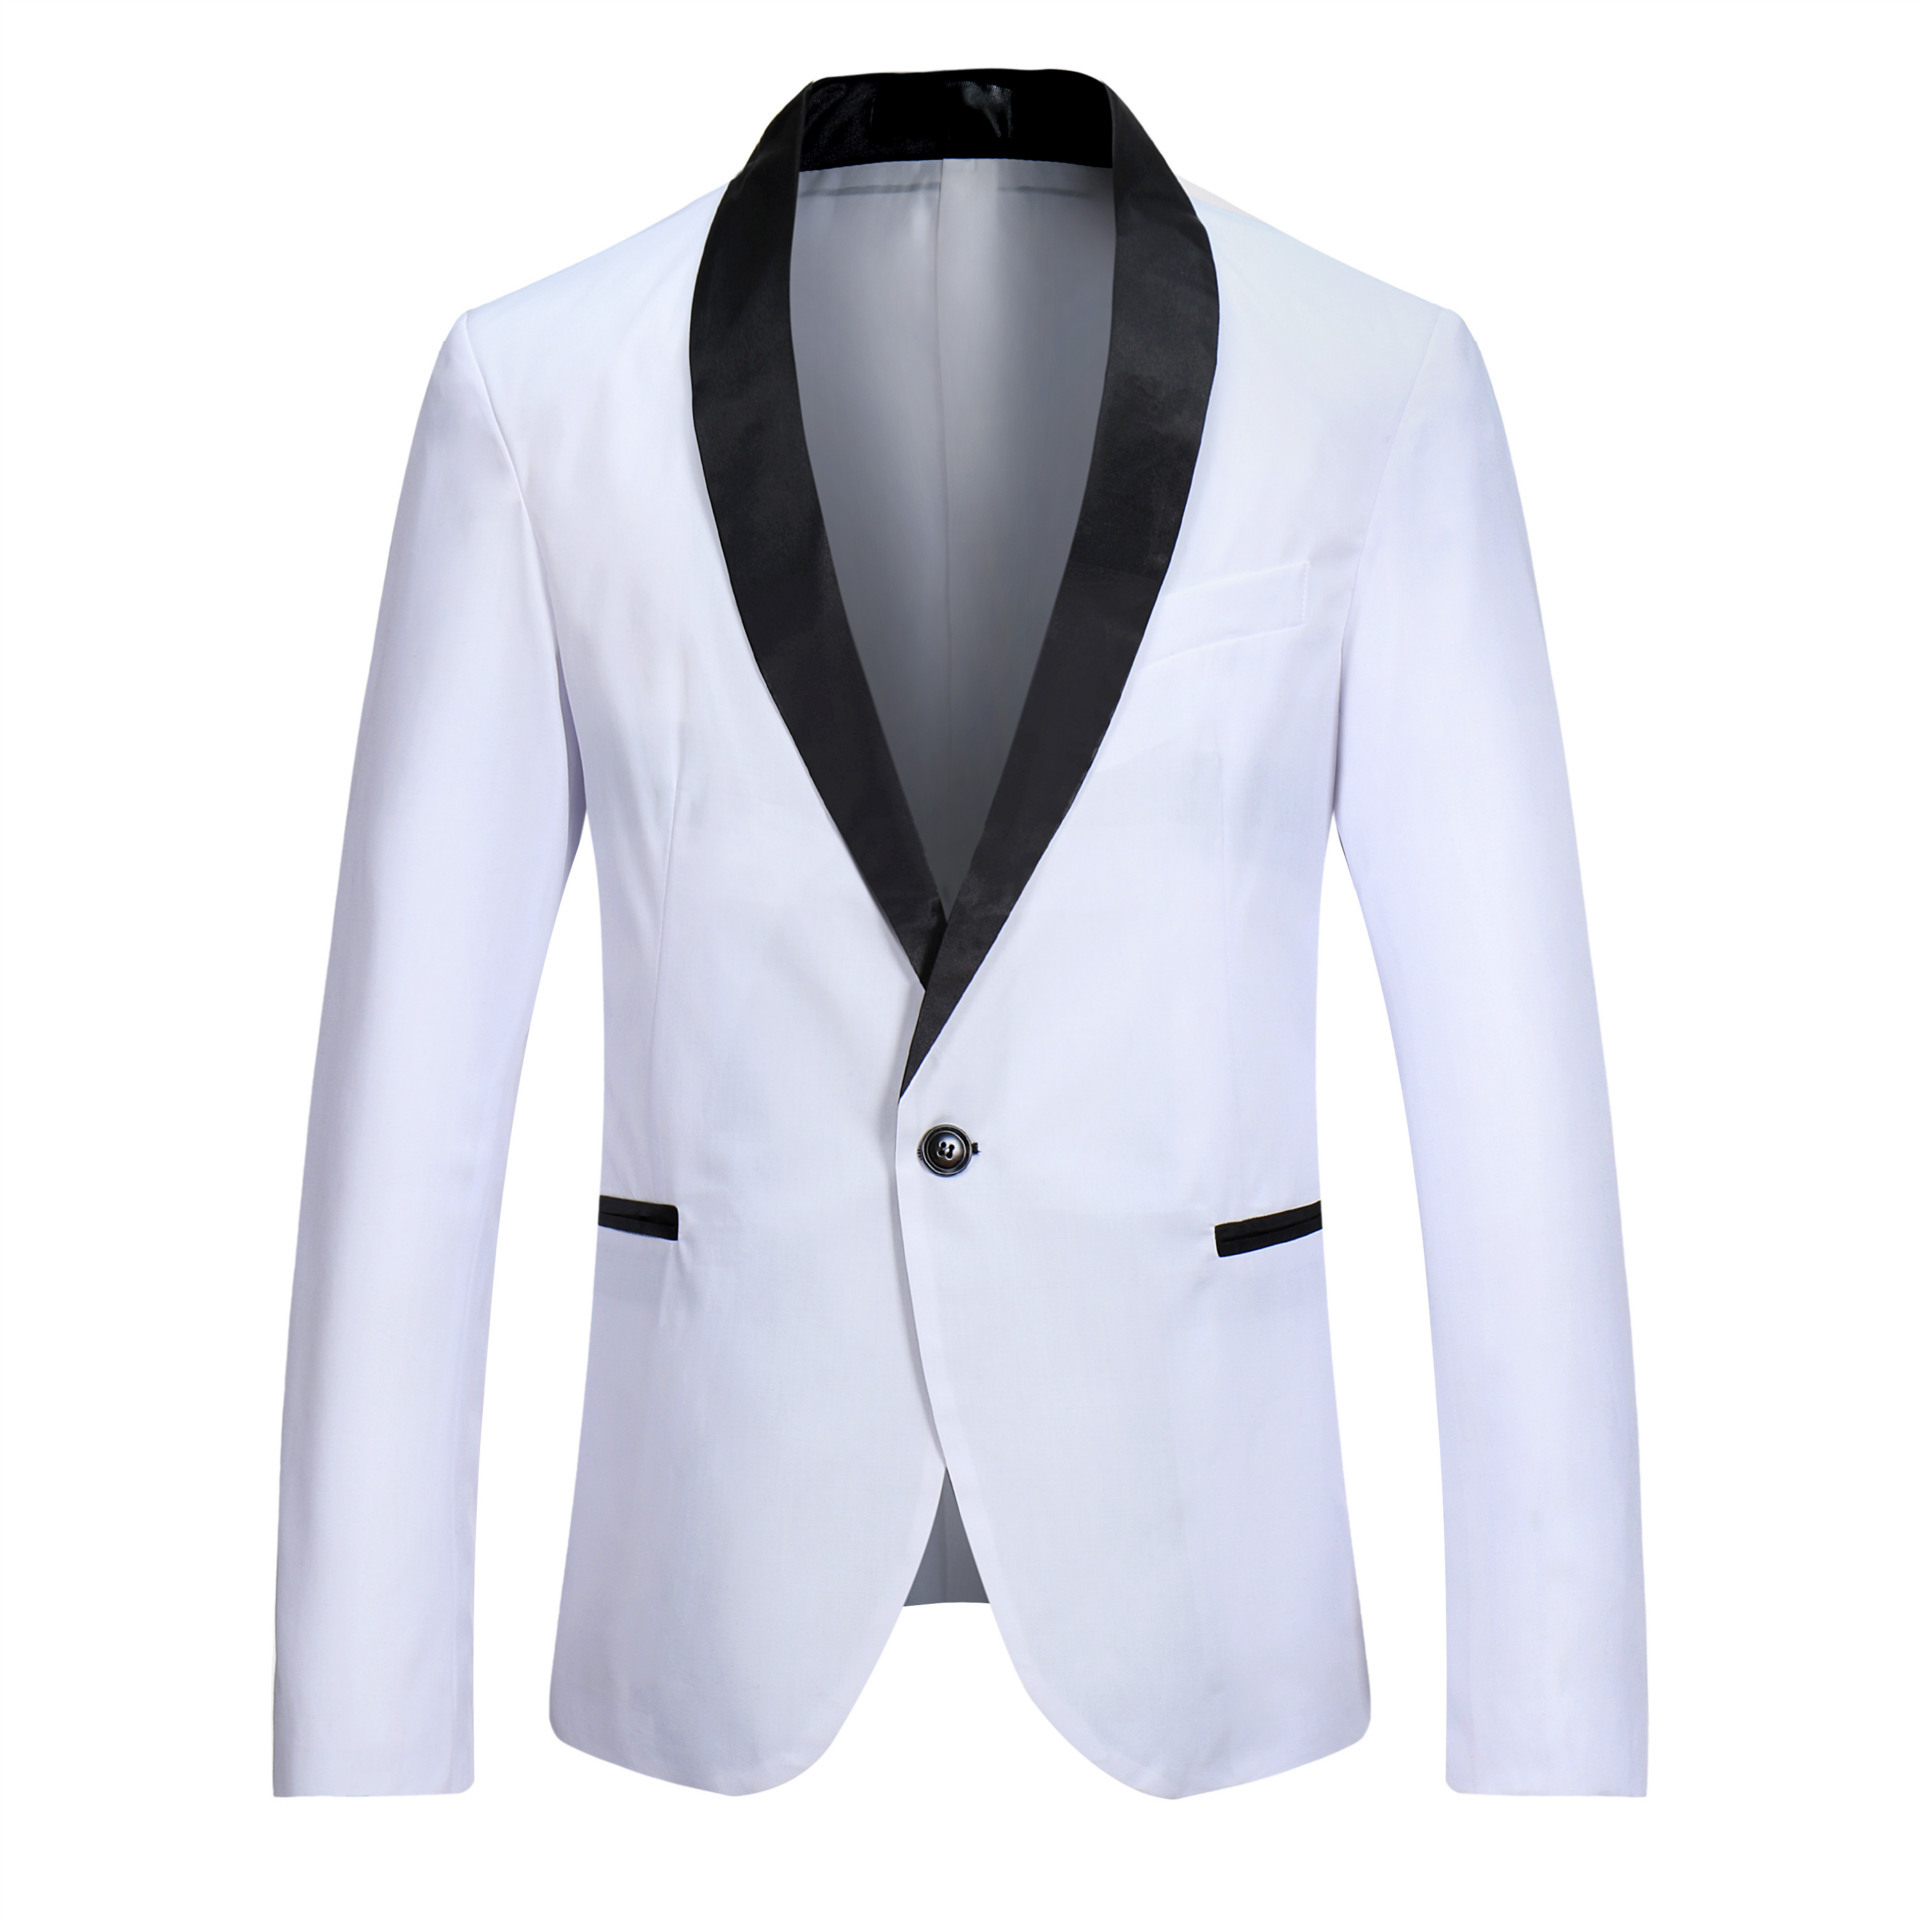 Vogue Of New Fund Of 2019 Men Concise Into Joining Leisure Suit Young Black Led Single Row A Grain Of Buckle Suit